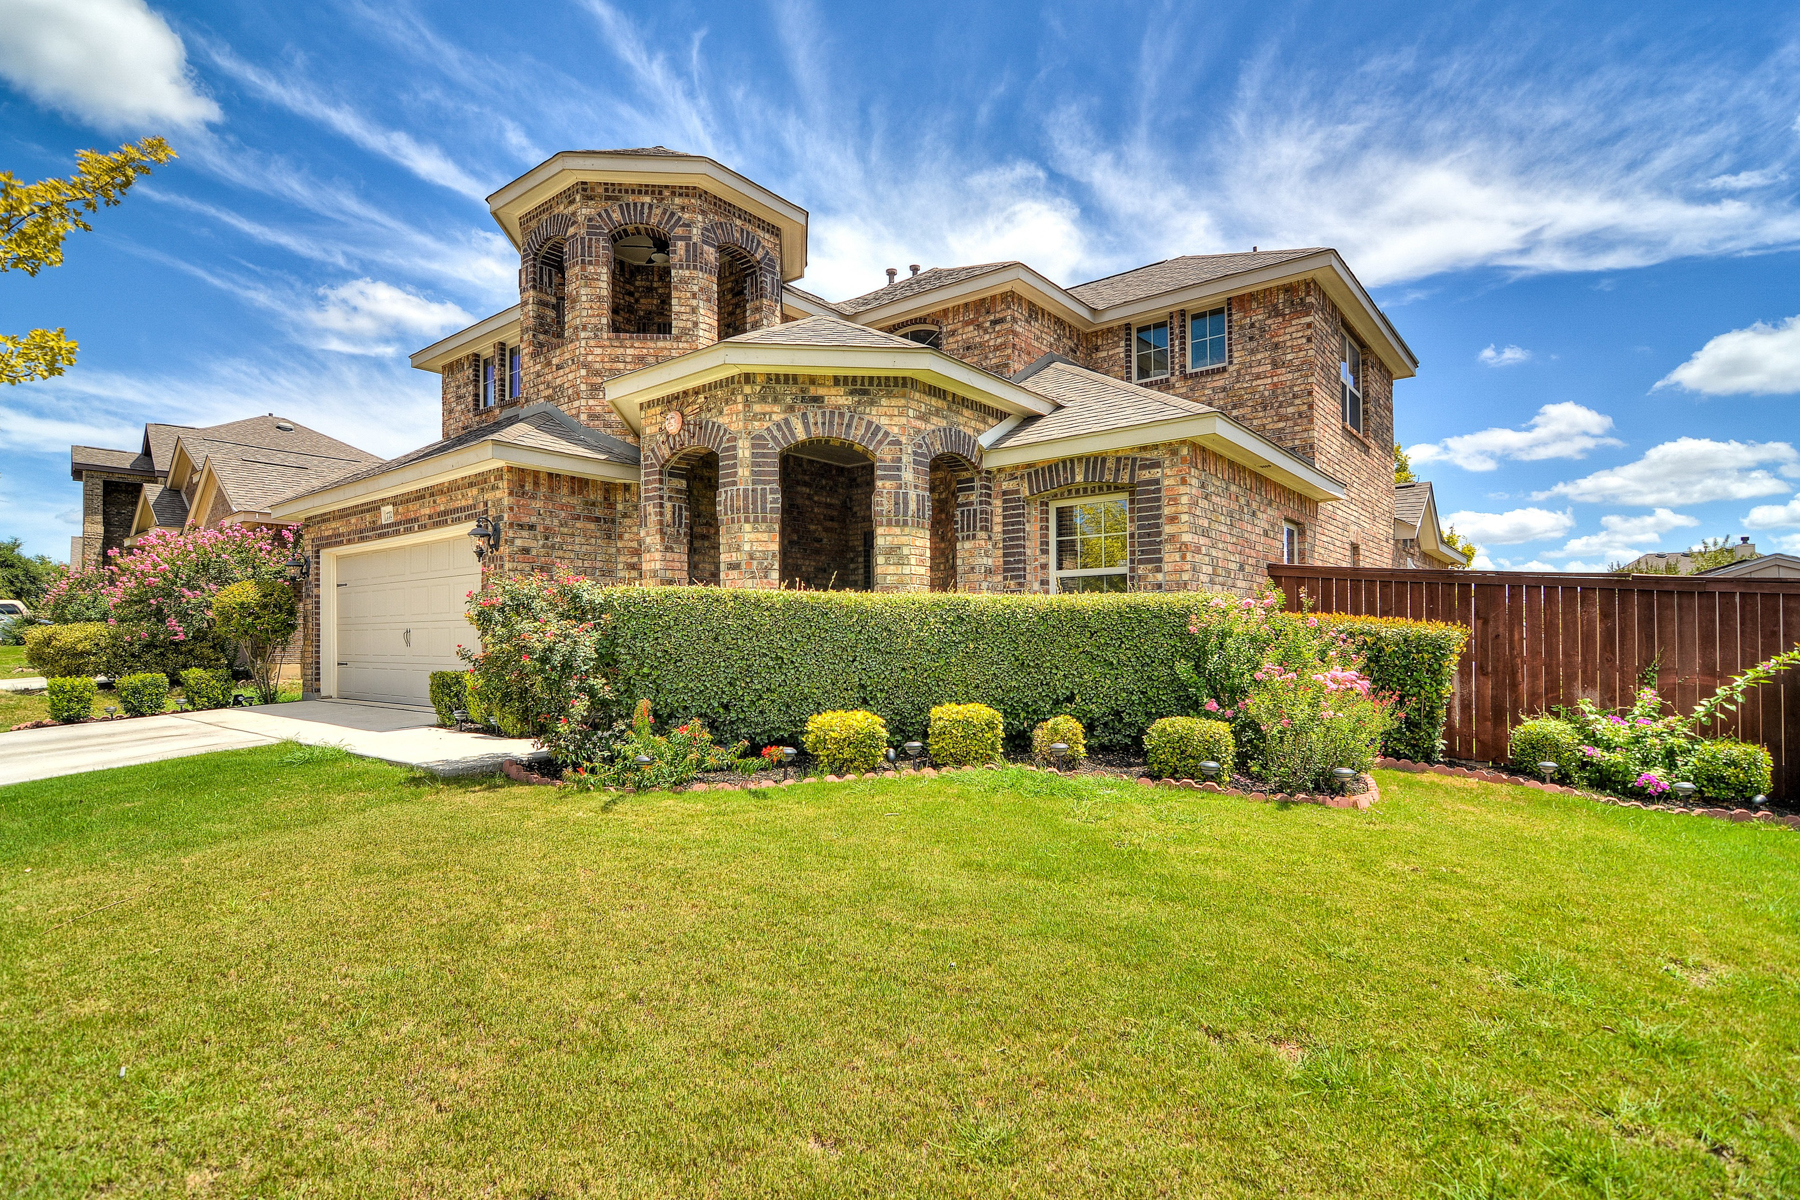 Single Family Home for Sale at Gorgeous Home in Stillwater Ranch 7702 Ruger Ranch San Antonio, Texas 78254 United States